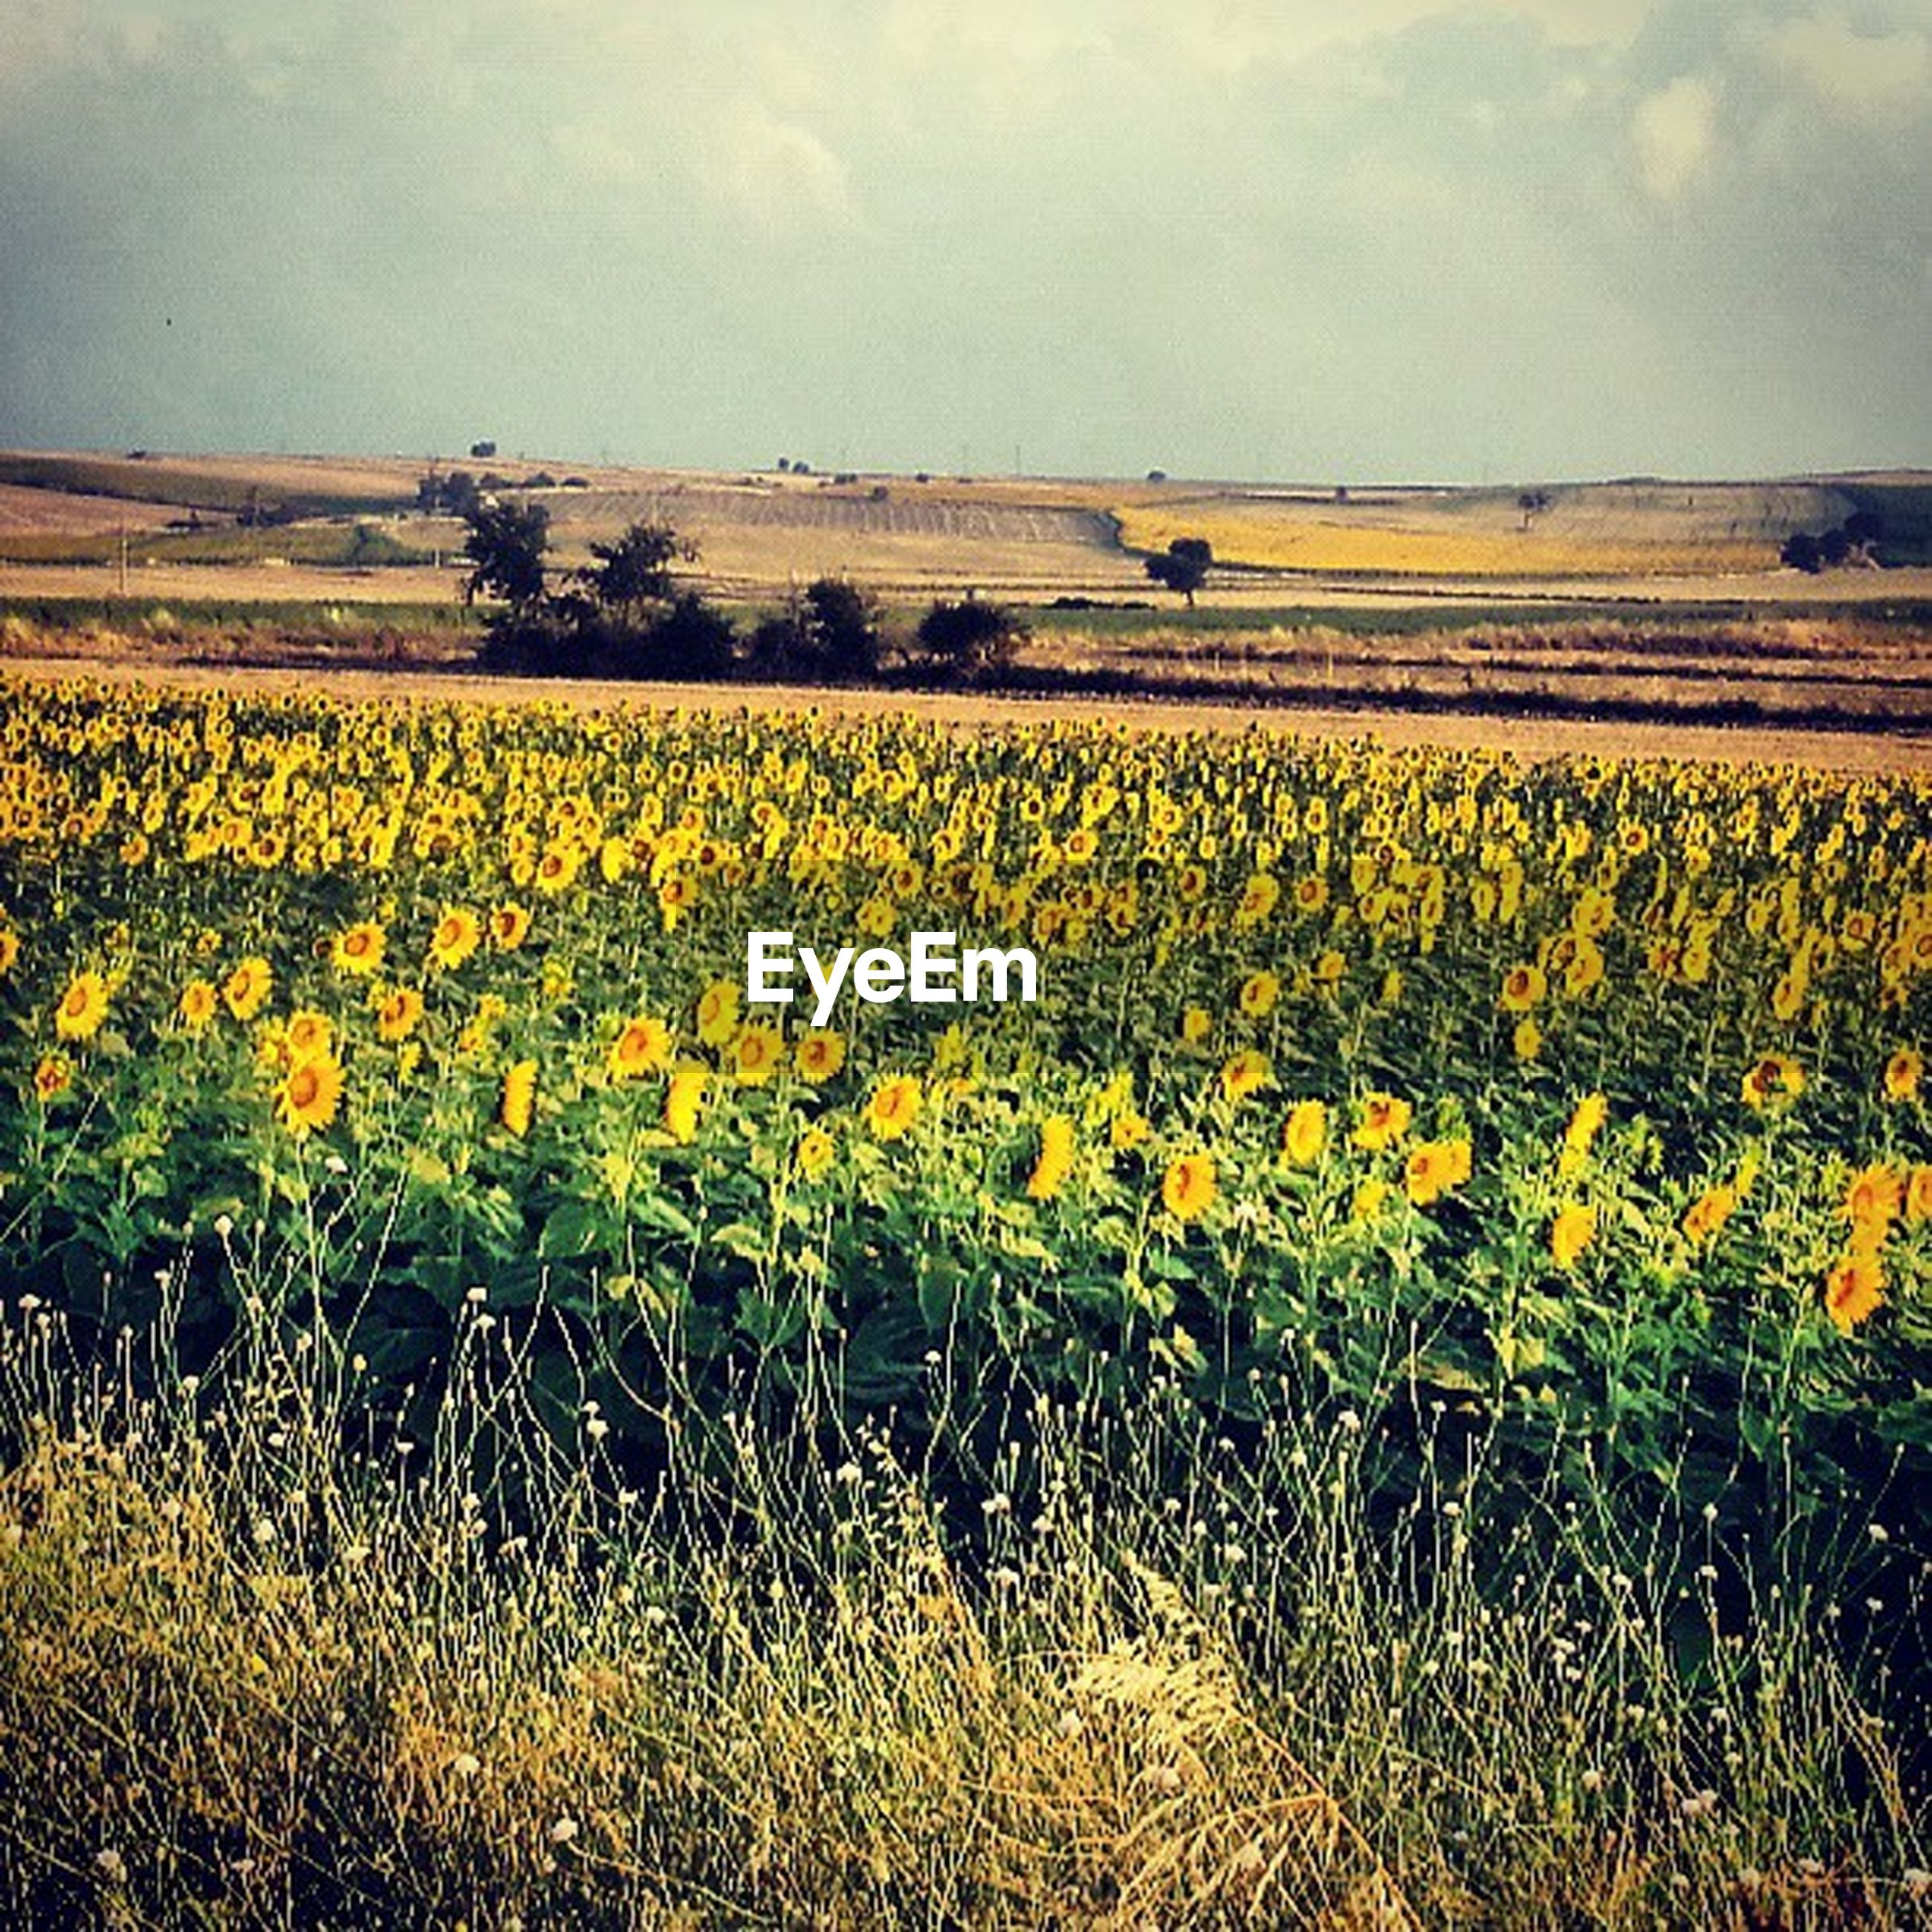 flower, yellow, agriculture, field, rural scene, growth, freshness, beauty in nature, farm, sky, landscape, nature, crop, fragility, tranquil scene, oilseed rape, plant, abundance, cultivated land, tranquility